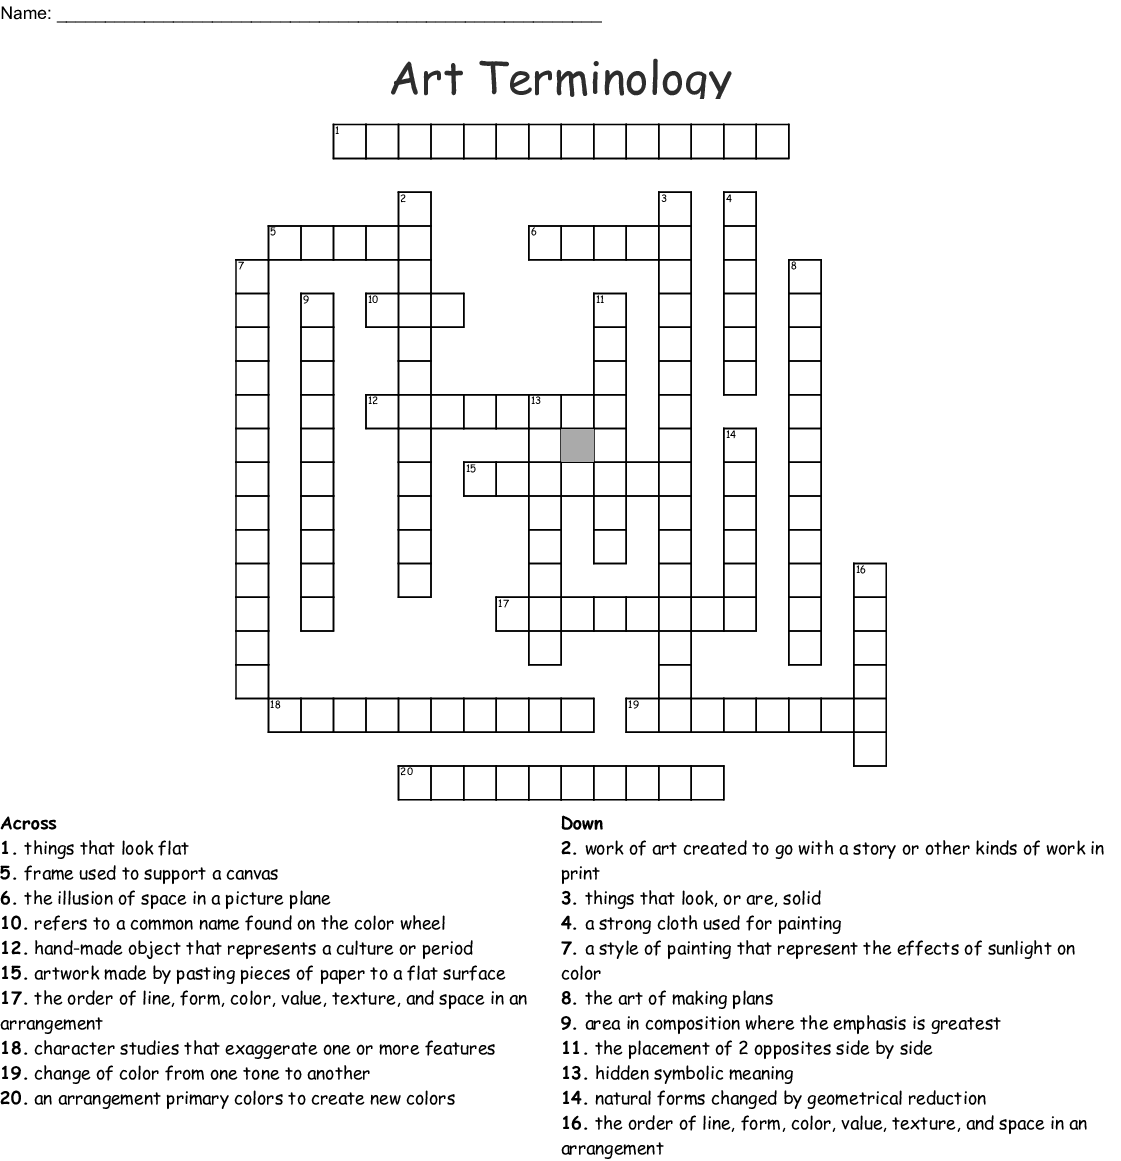 Art Terms Word Search - WordMint